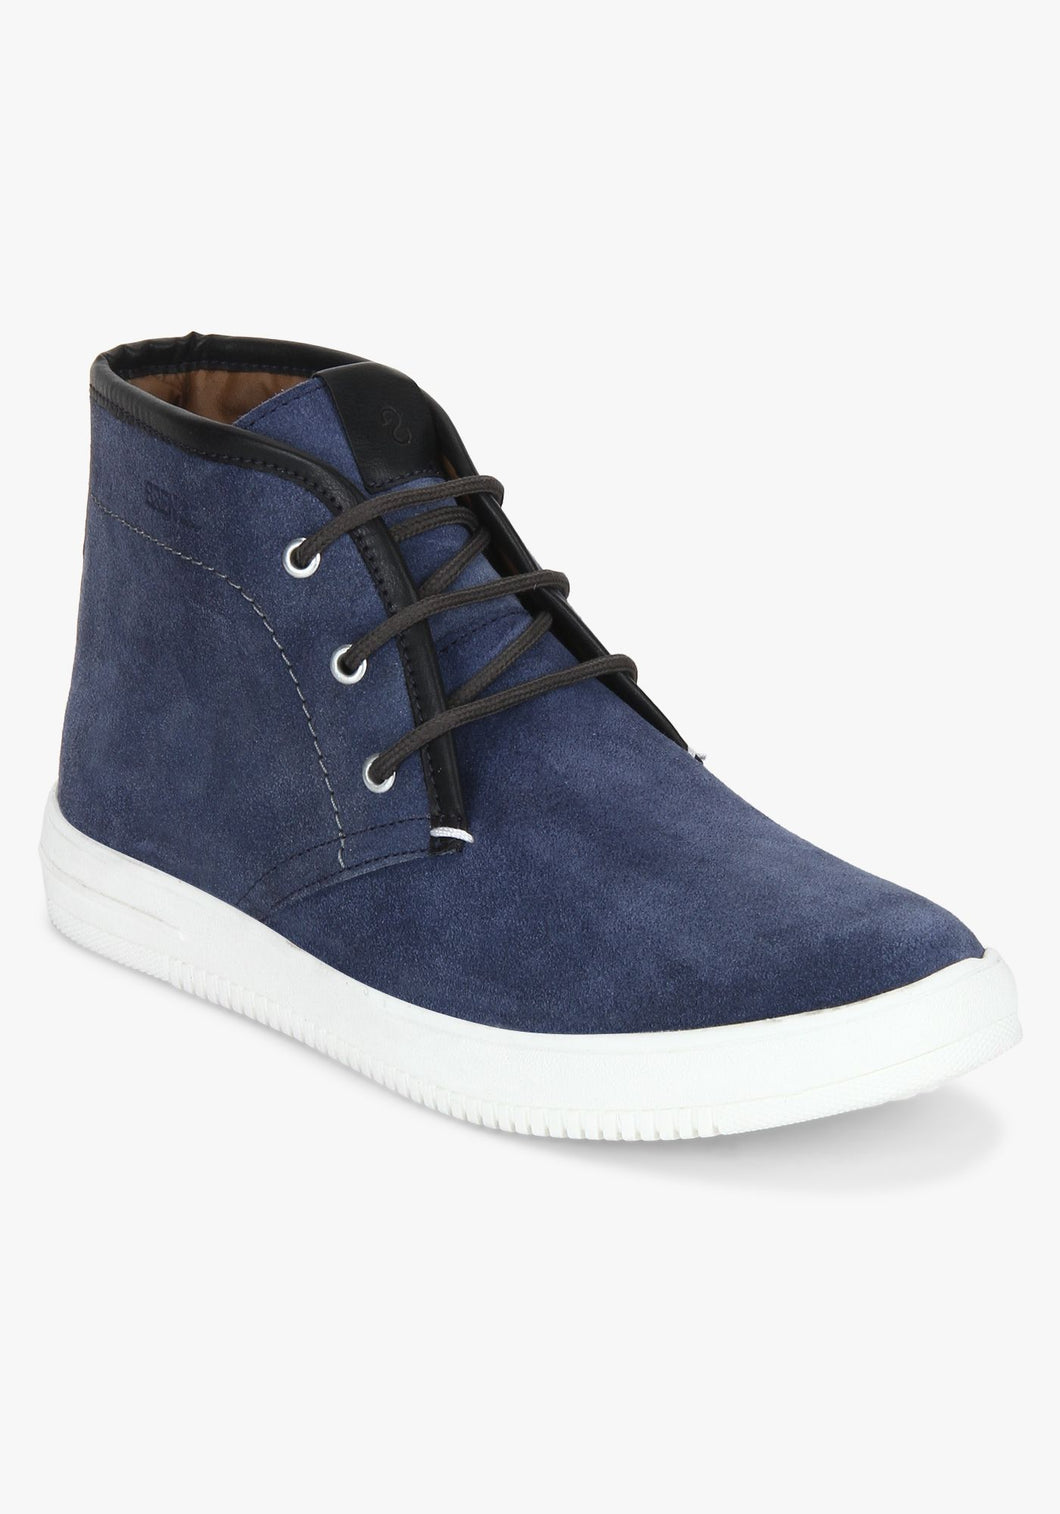 Men's Blue Casual Boots